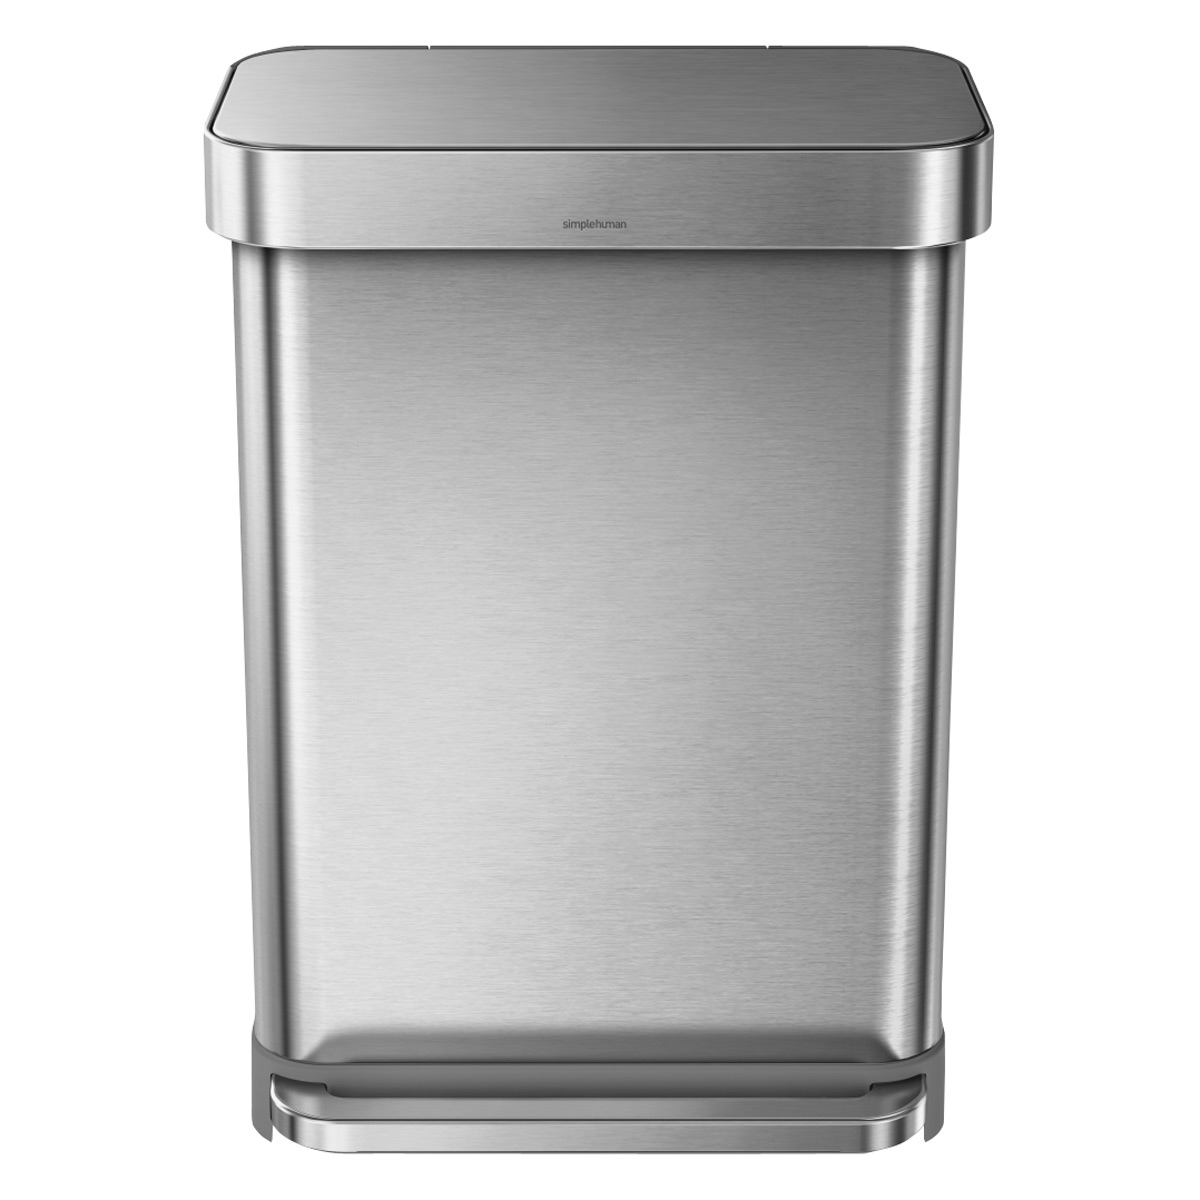 Rvs Vuilnisbak Simplehuman Stainless Steel 14 4 Gal Rectangular Trash